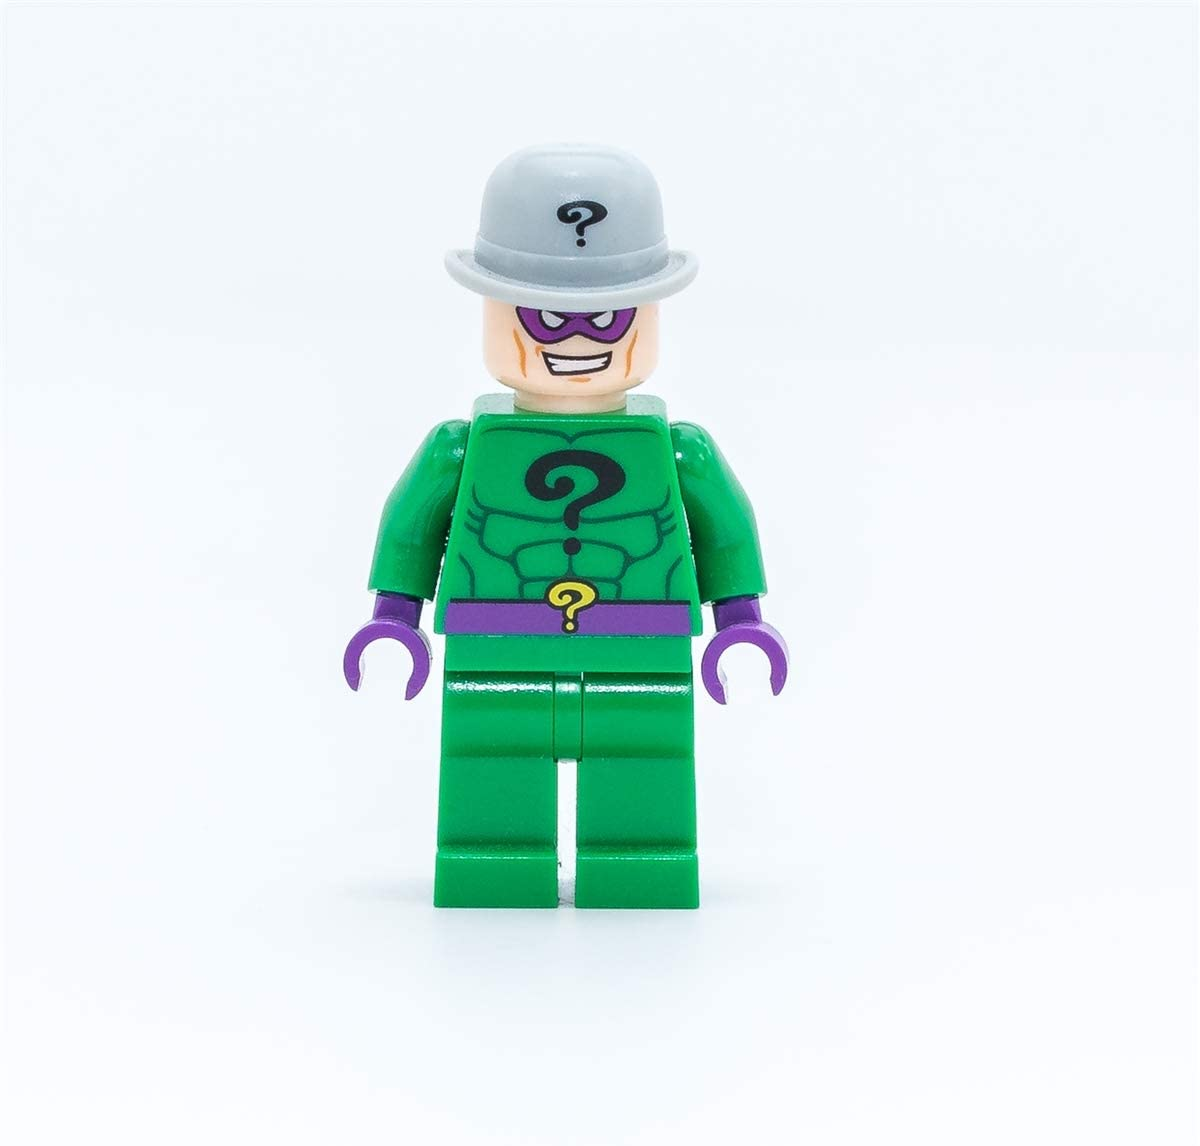 LEGO DC Comics Super Heores Minifigure The Riddler with Crowbar